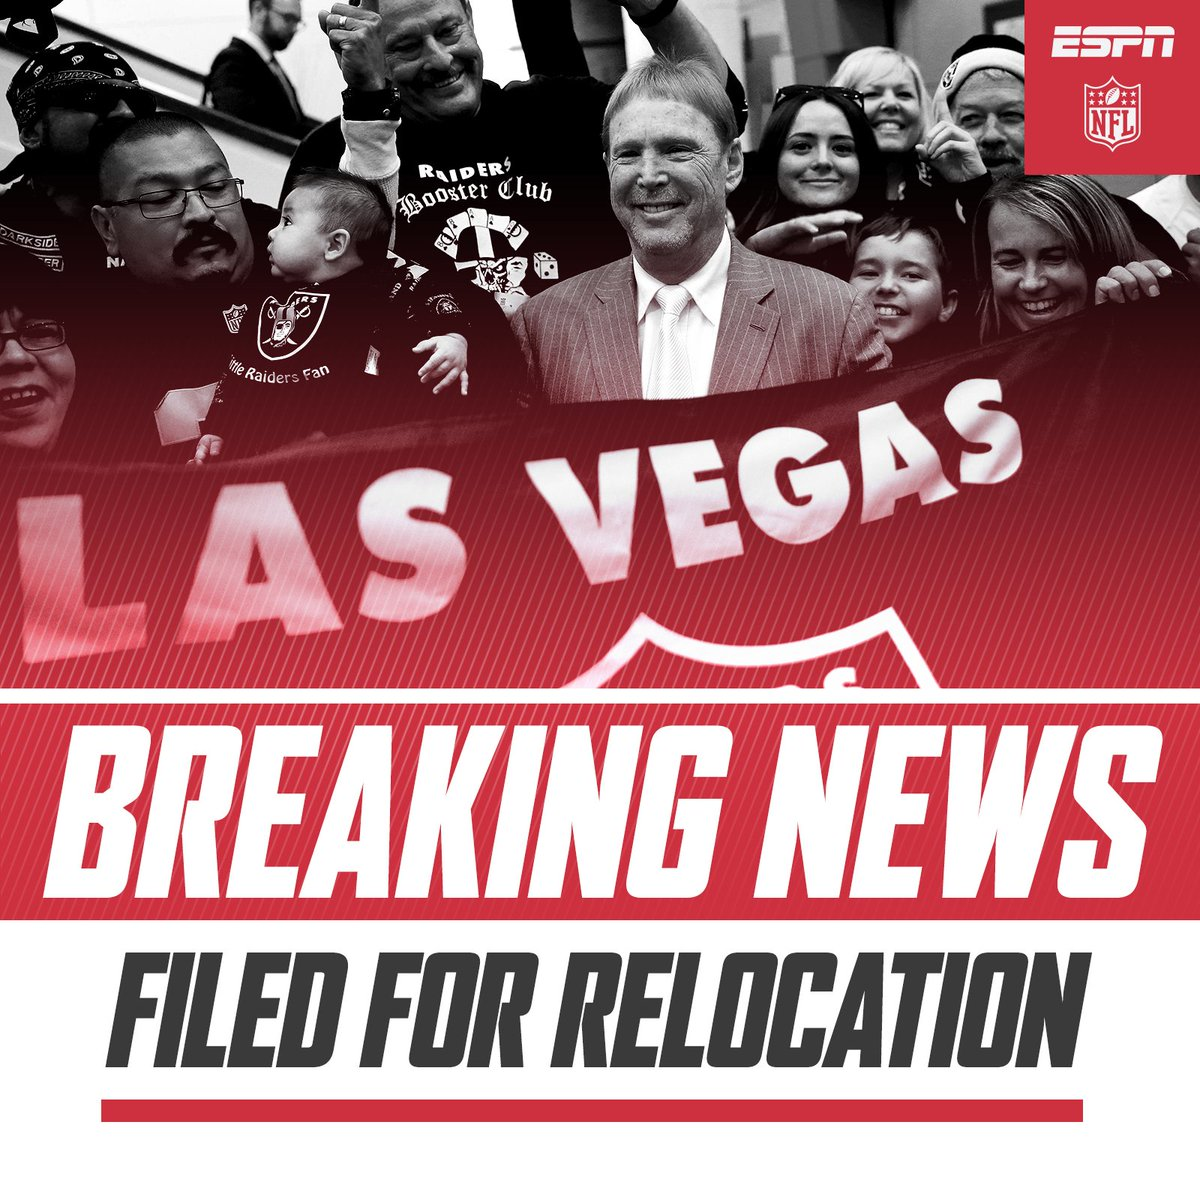 The Oakland Raiders have filed paperwork to move to Las Vegas.